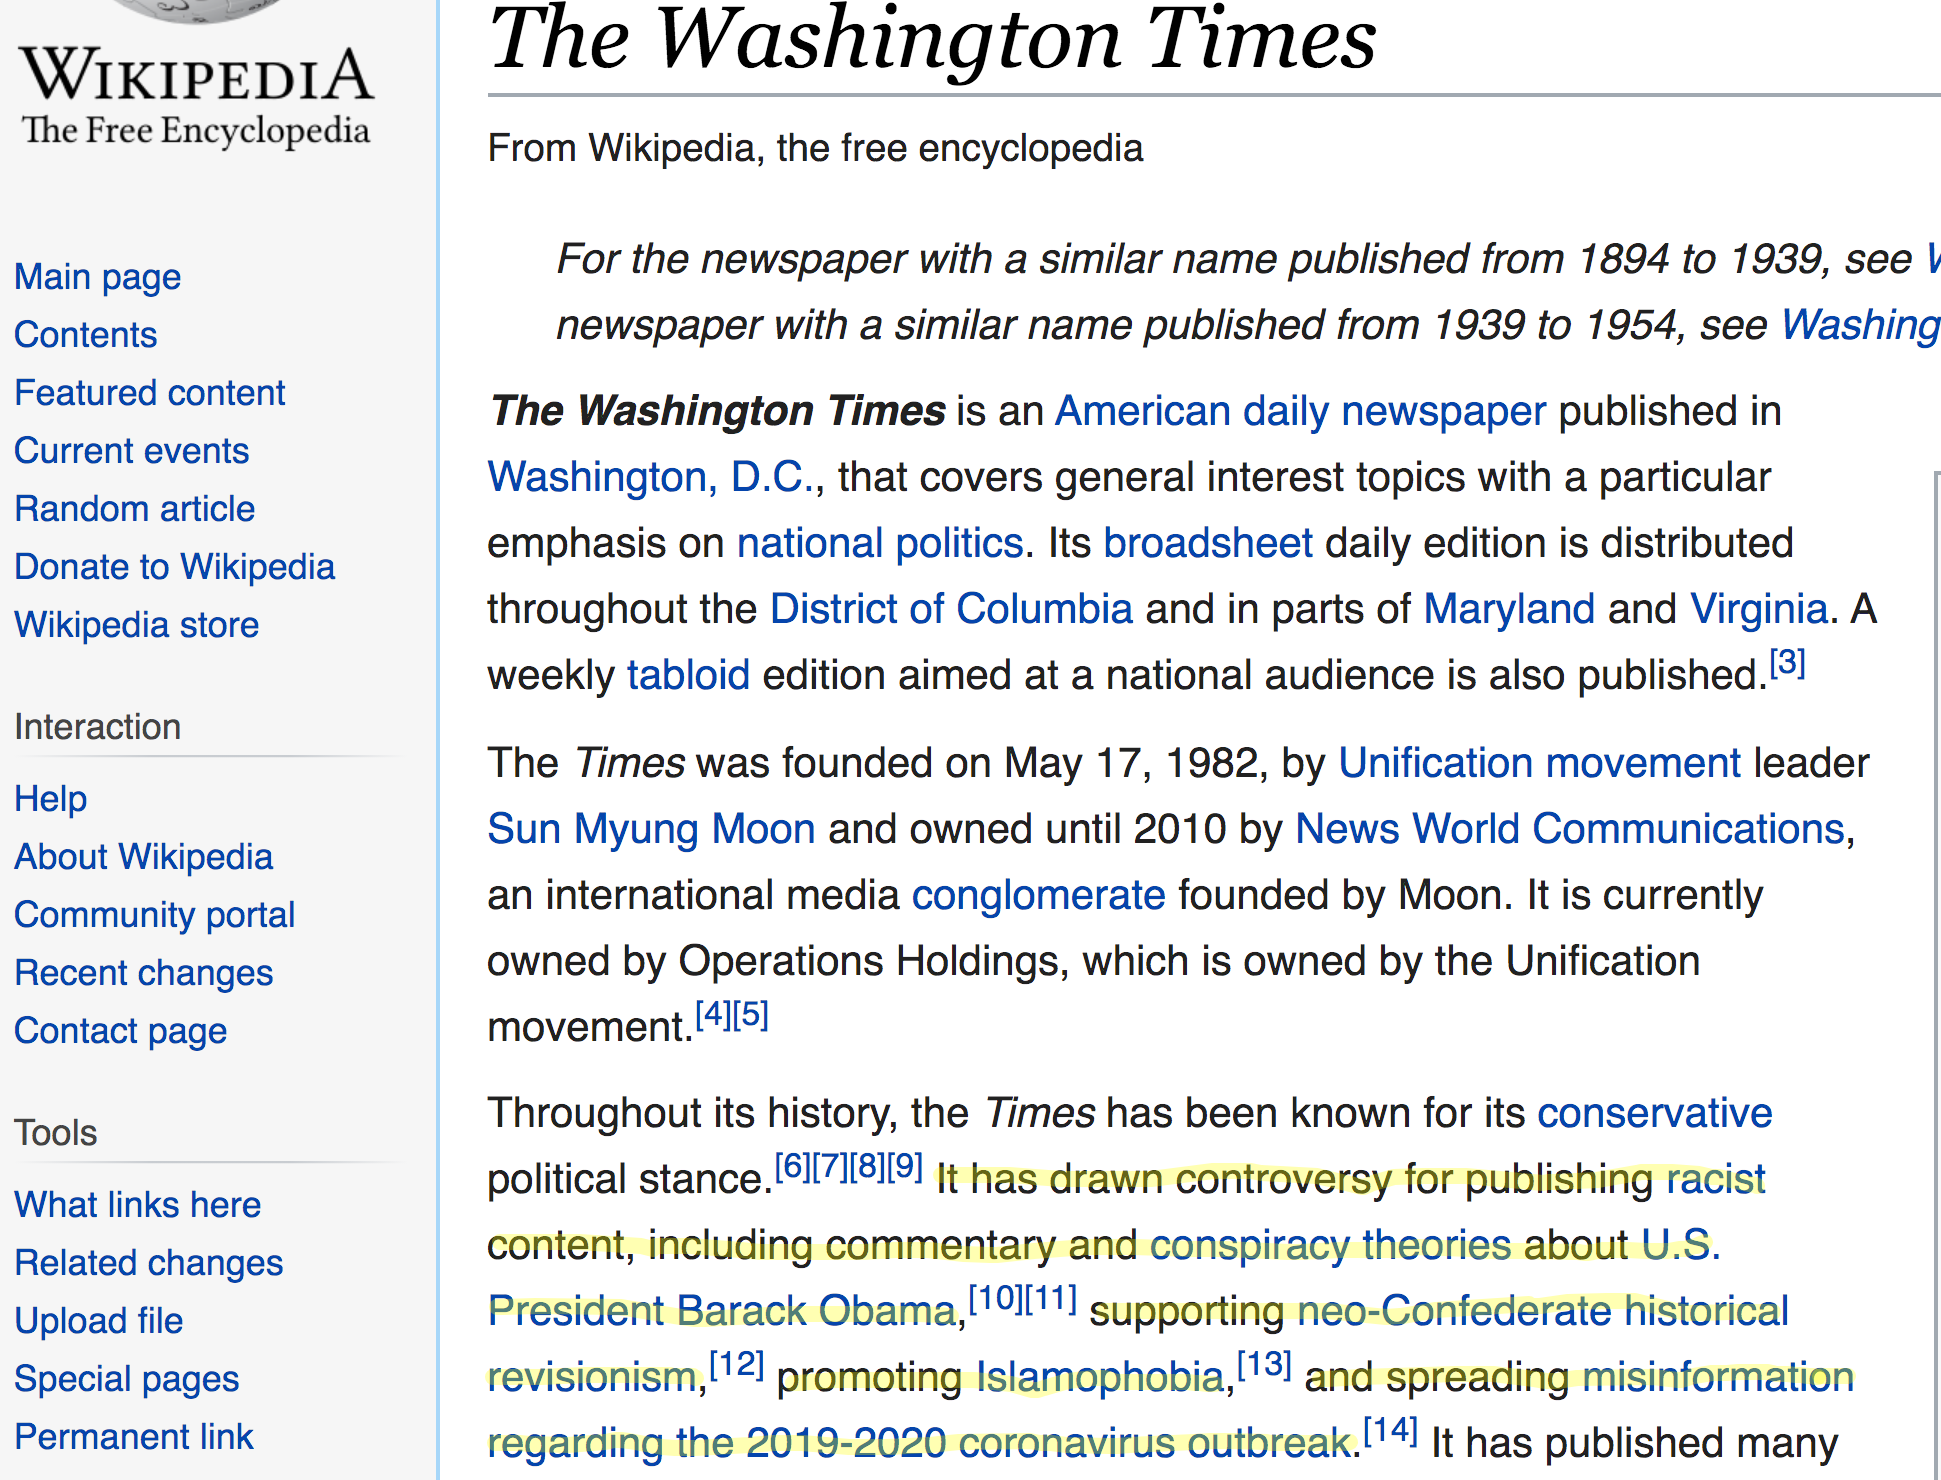 Wikipedia entry for the Washington Times